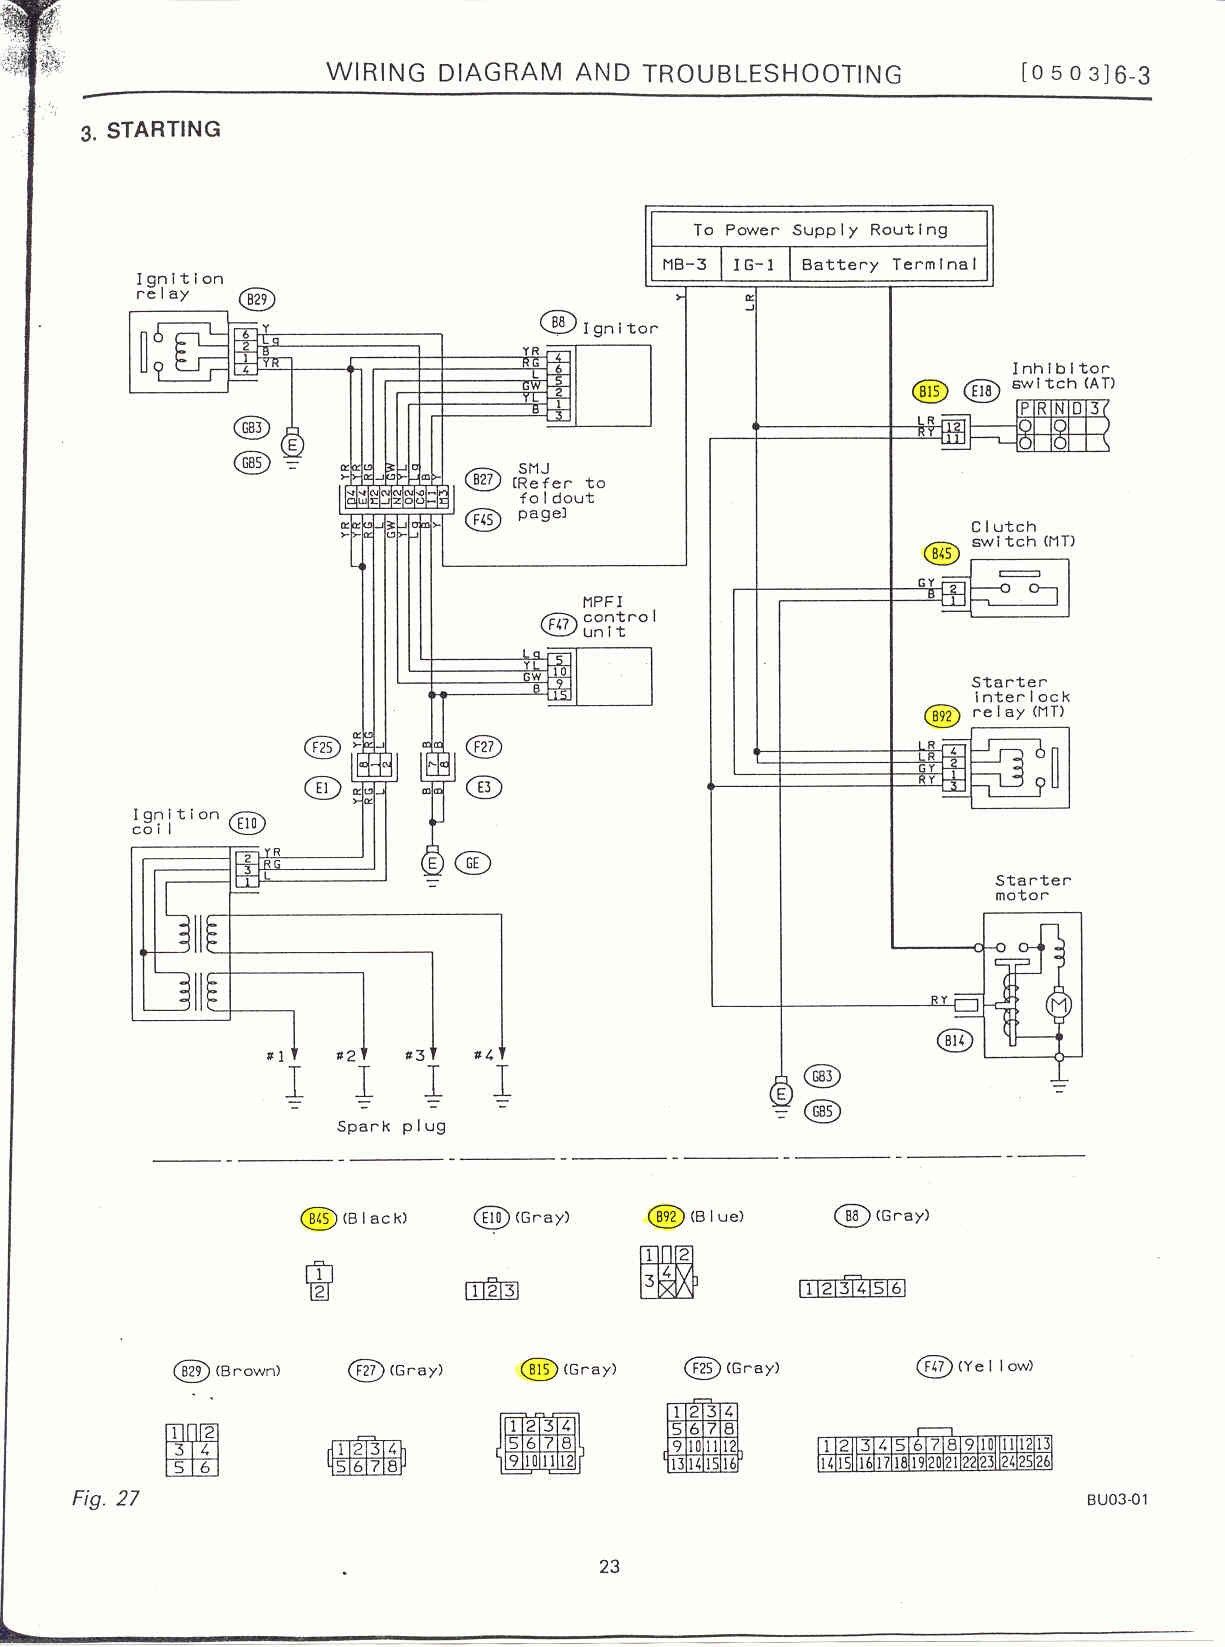 6 3_starting wiring diagram 2006 subaru legacy the wiring diagram Subaru Legacy Engine Diagram at gsmx.co